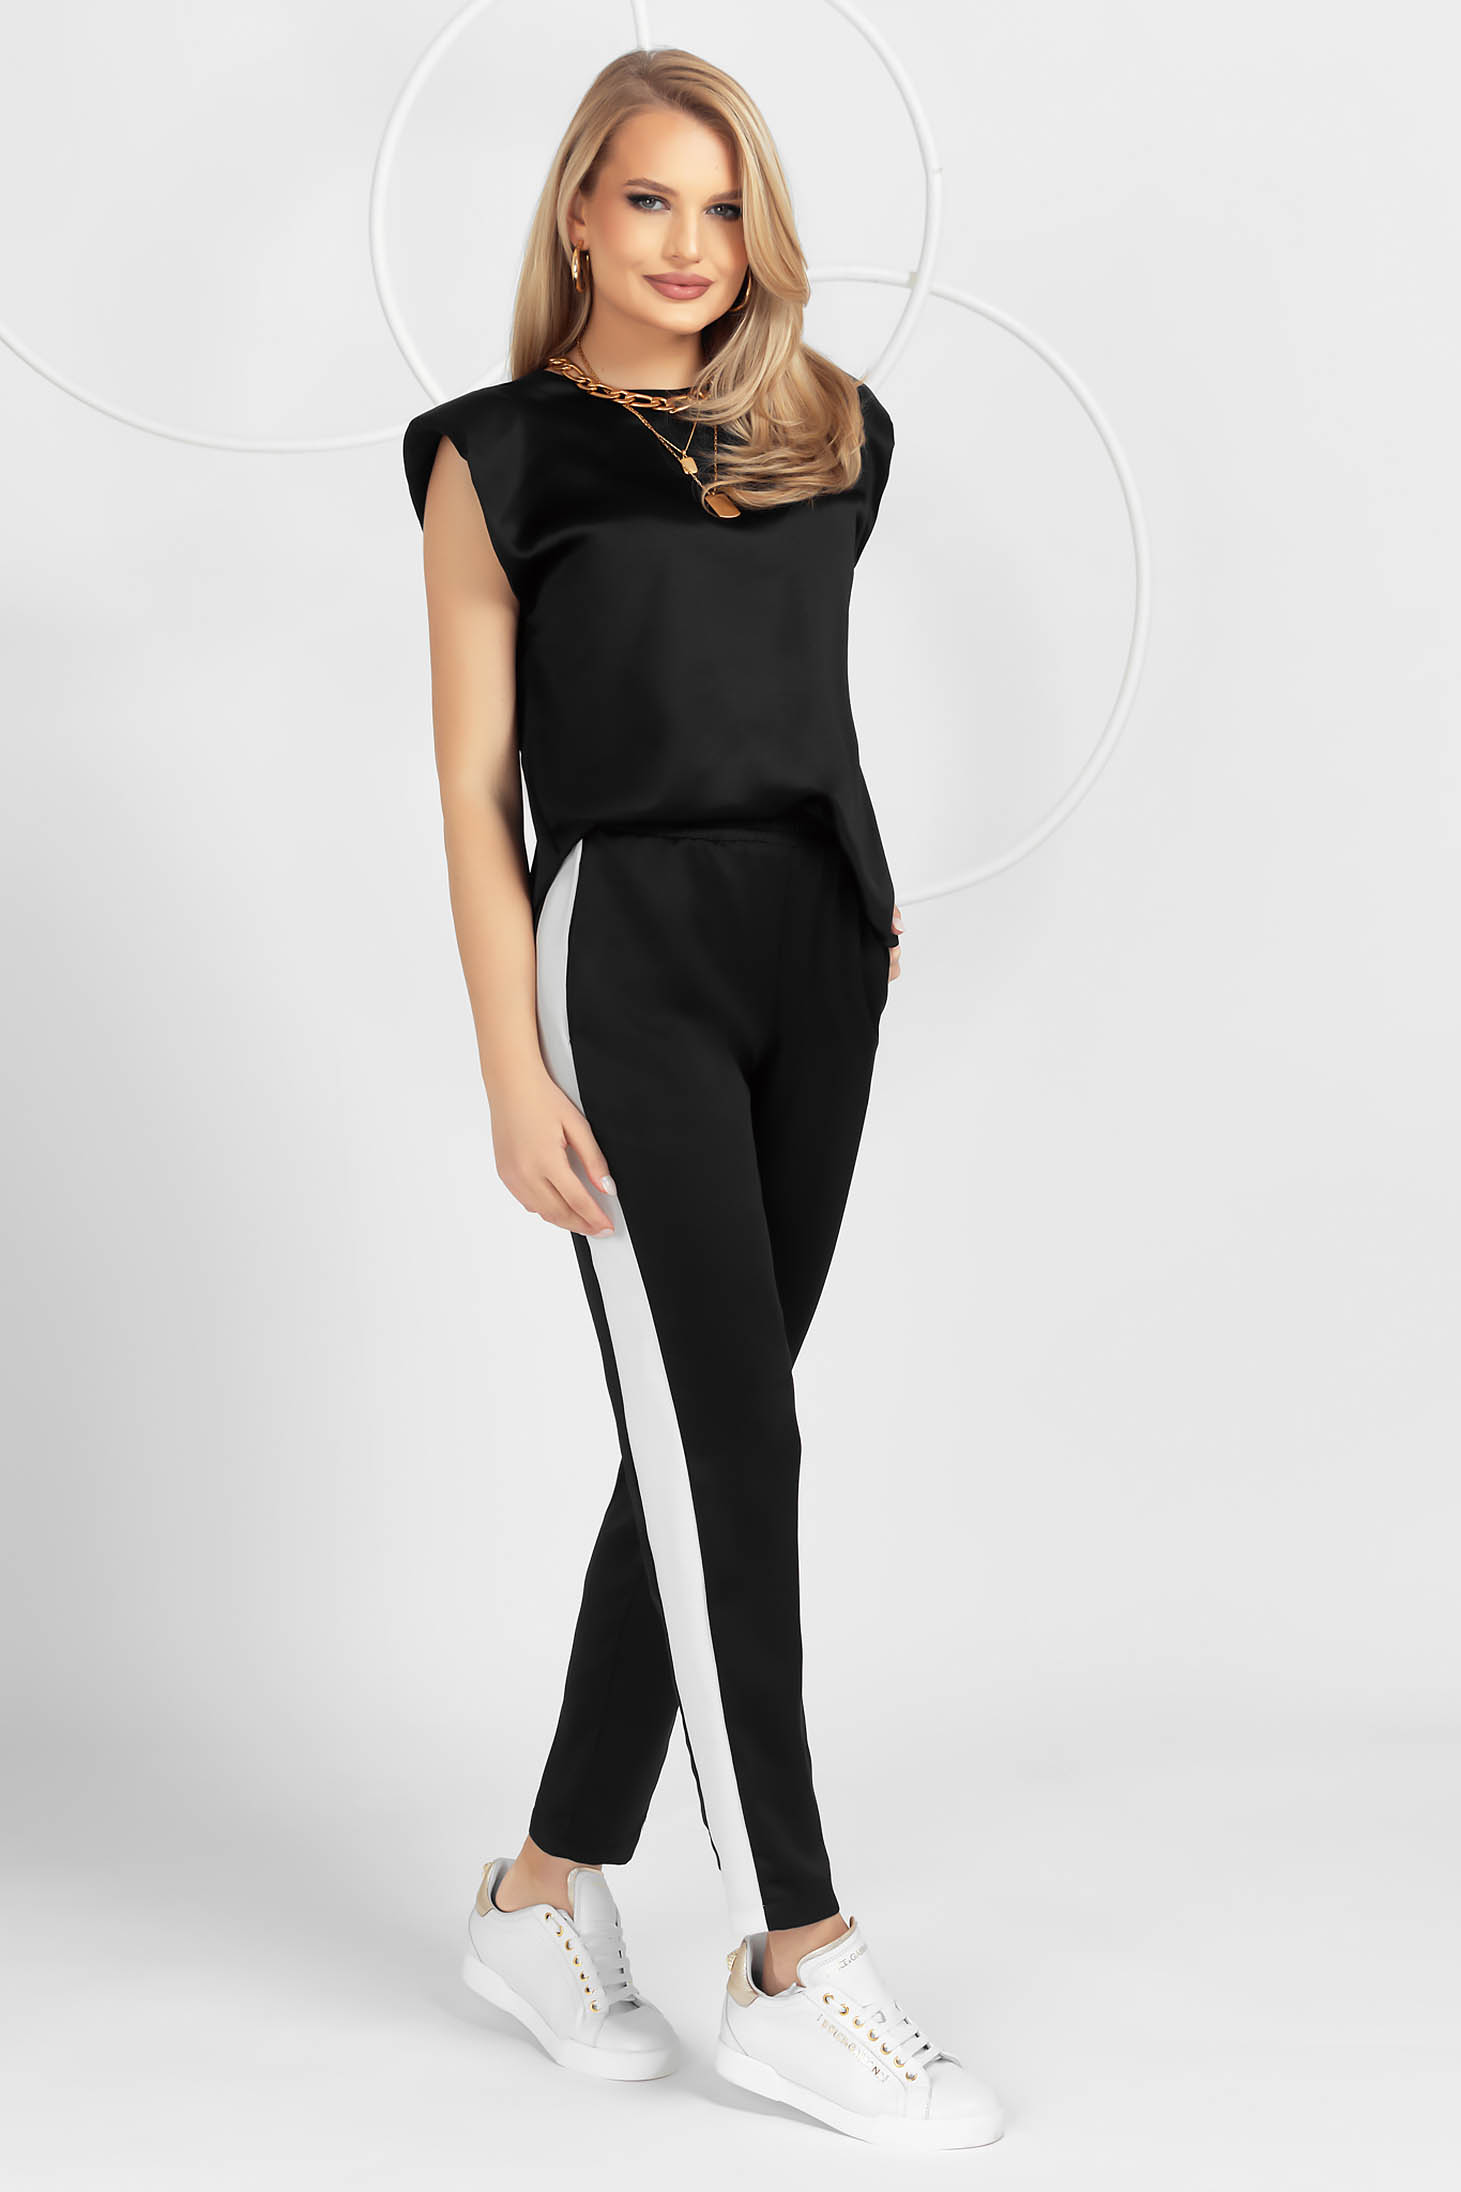 Black sport 2 pieces from satin loose fit with padded shoulders